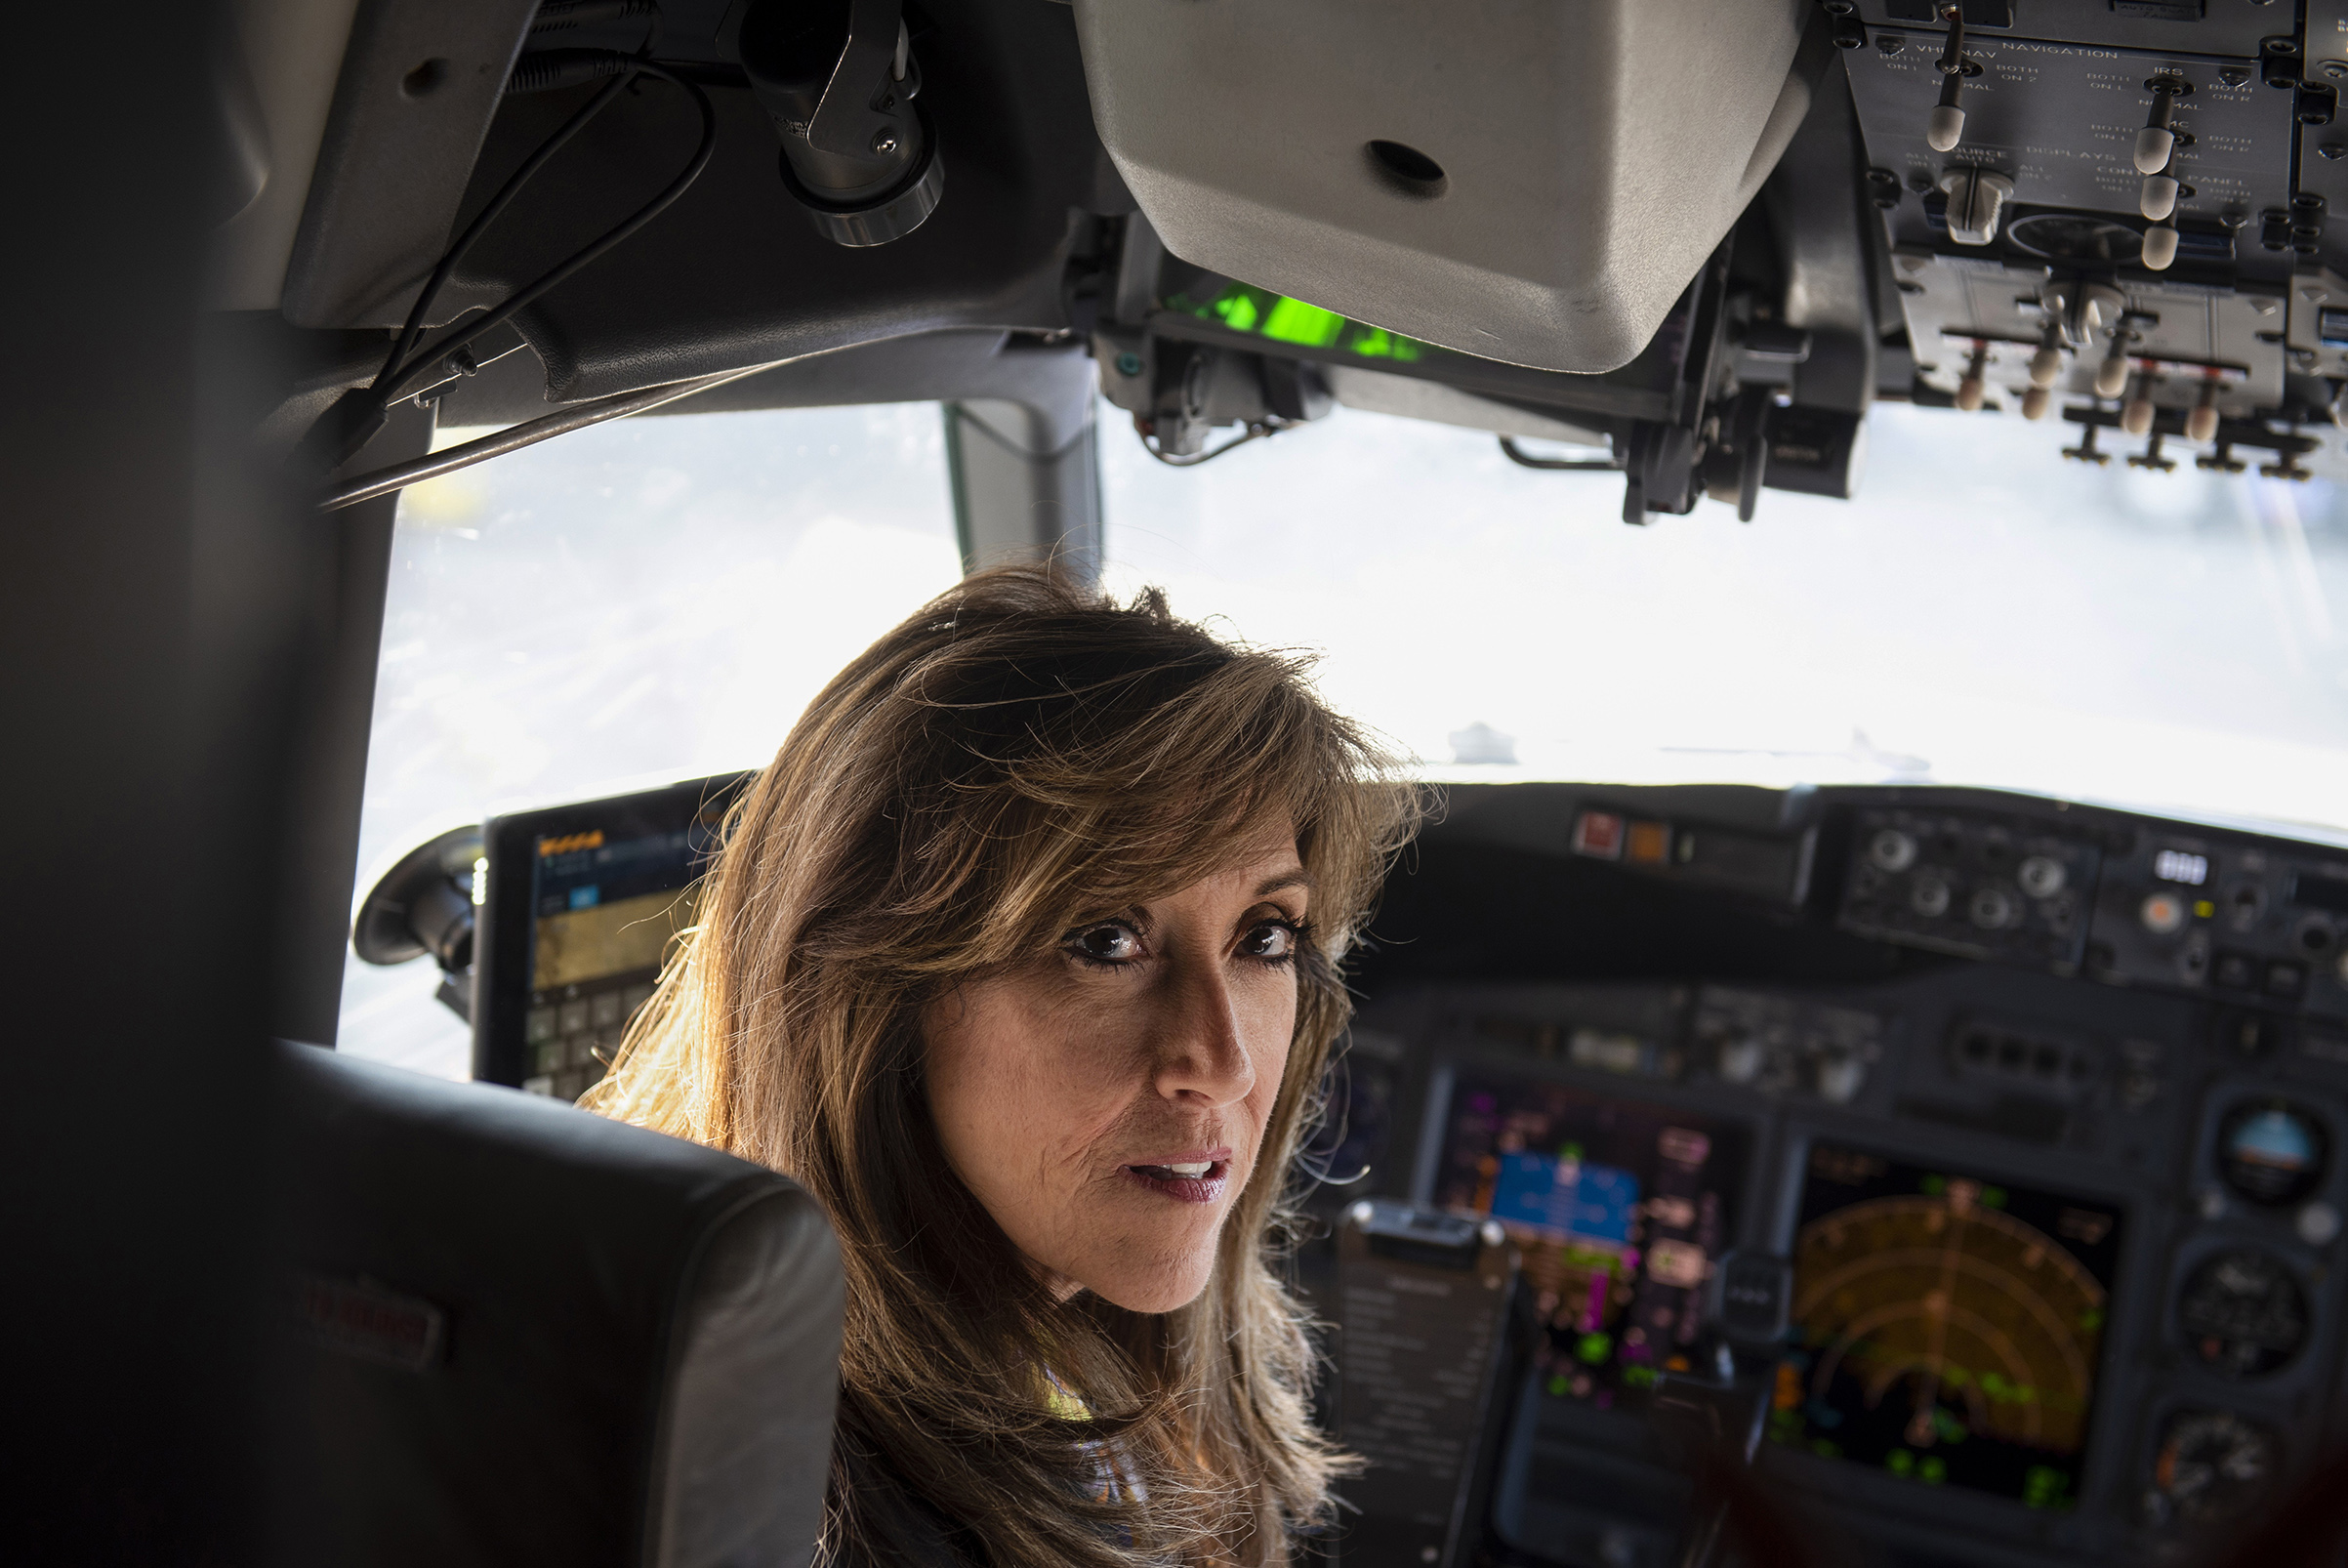 Pilot Tammie Jo Shults in the cockpit of an airplane on Aug. 1, 2018 at the San Antonio International Airport